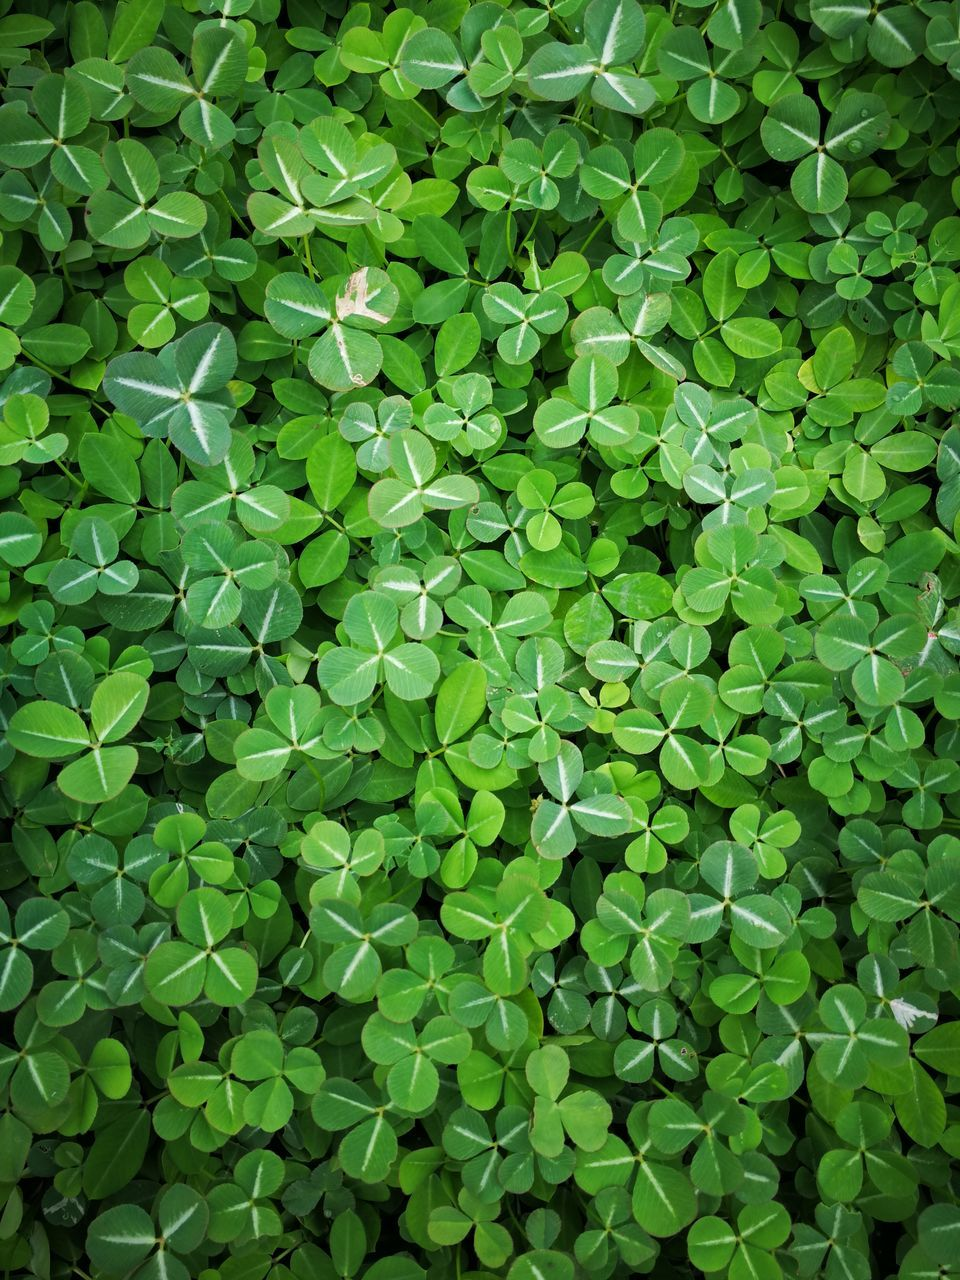 green color, leaf, full frame, backgrounds, plant, growth, no people, high angle view, day, nature, outdoors, abundance, large group of objects, freshness, beauty in nature, close-up, fragility